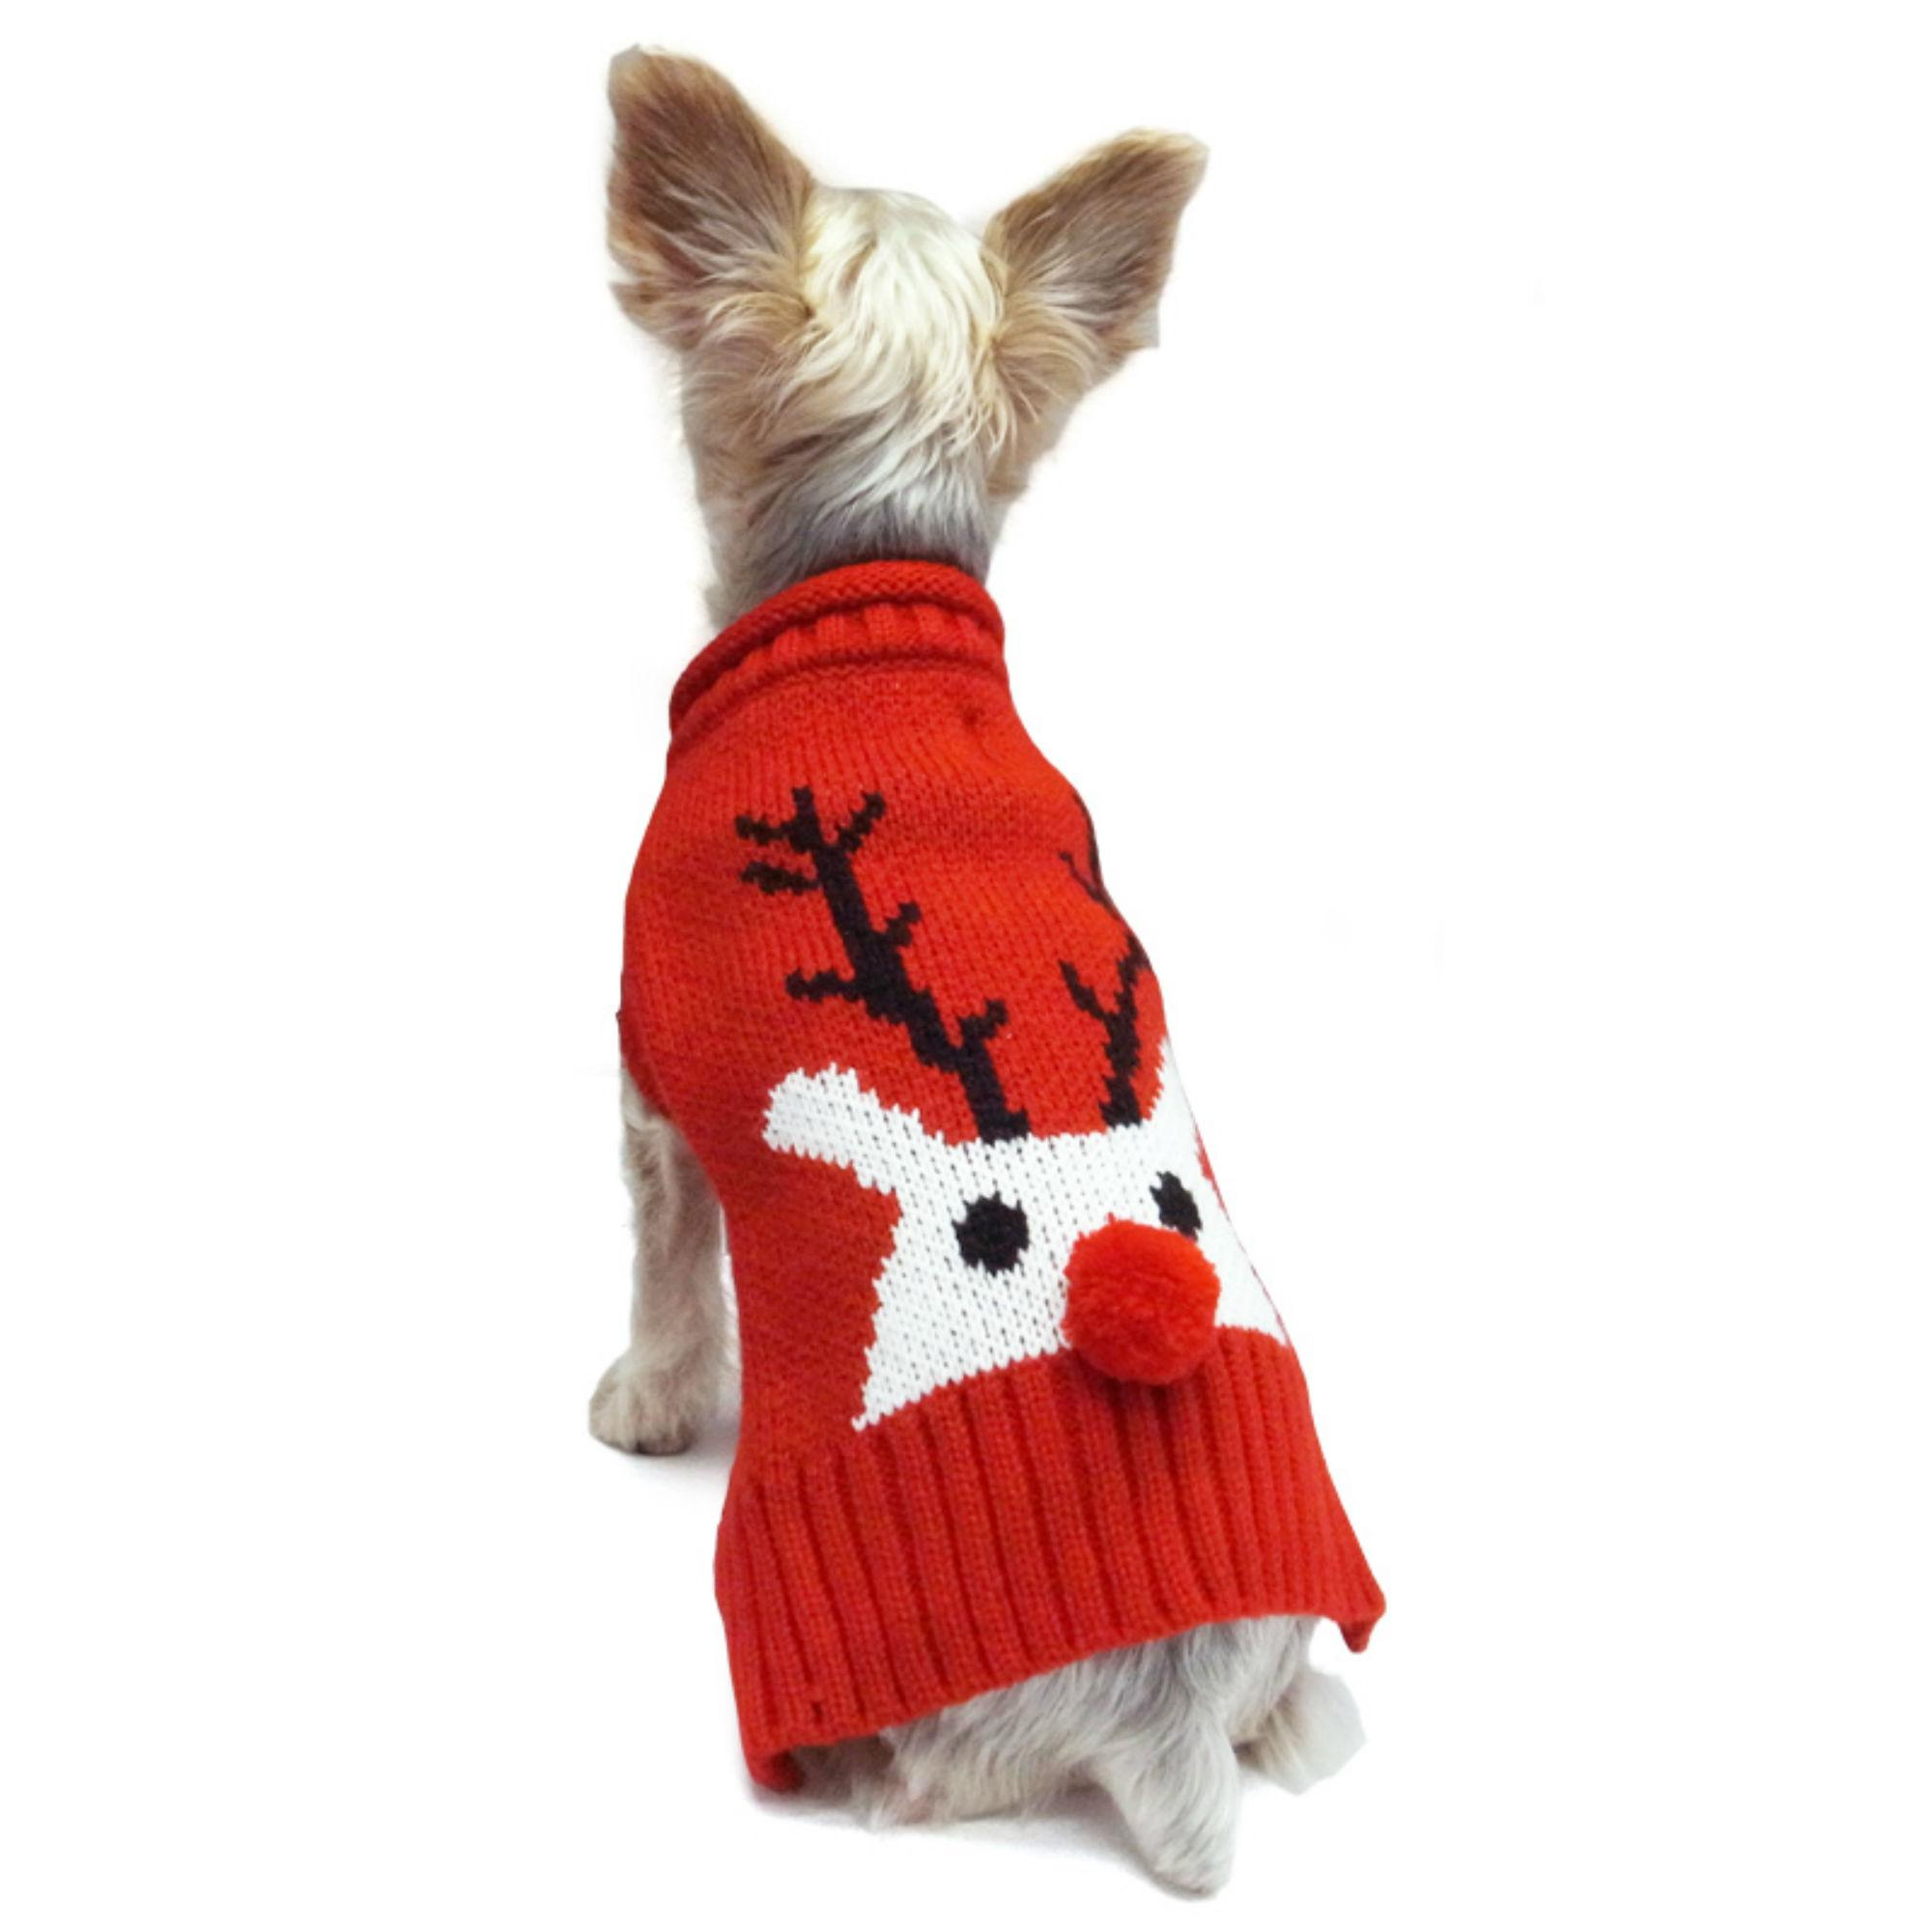 Red Nose Reindeer Dog Sweater By Dogo Red 4x Large Walmart Com